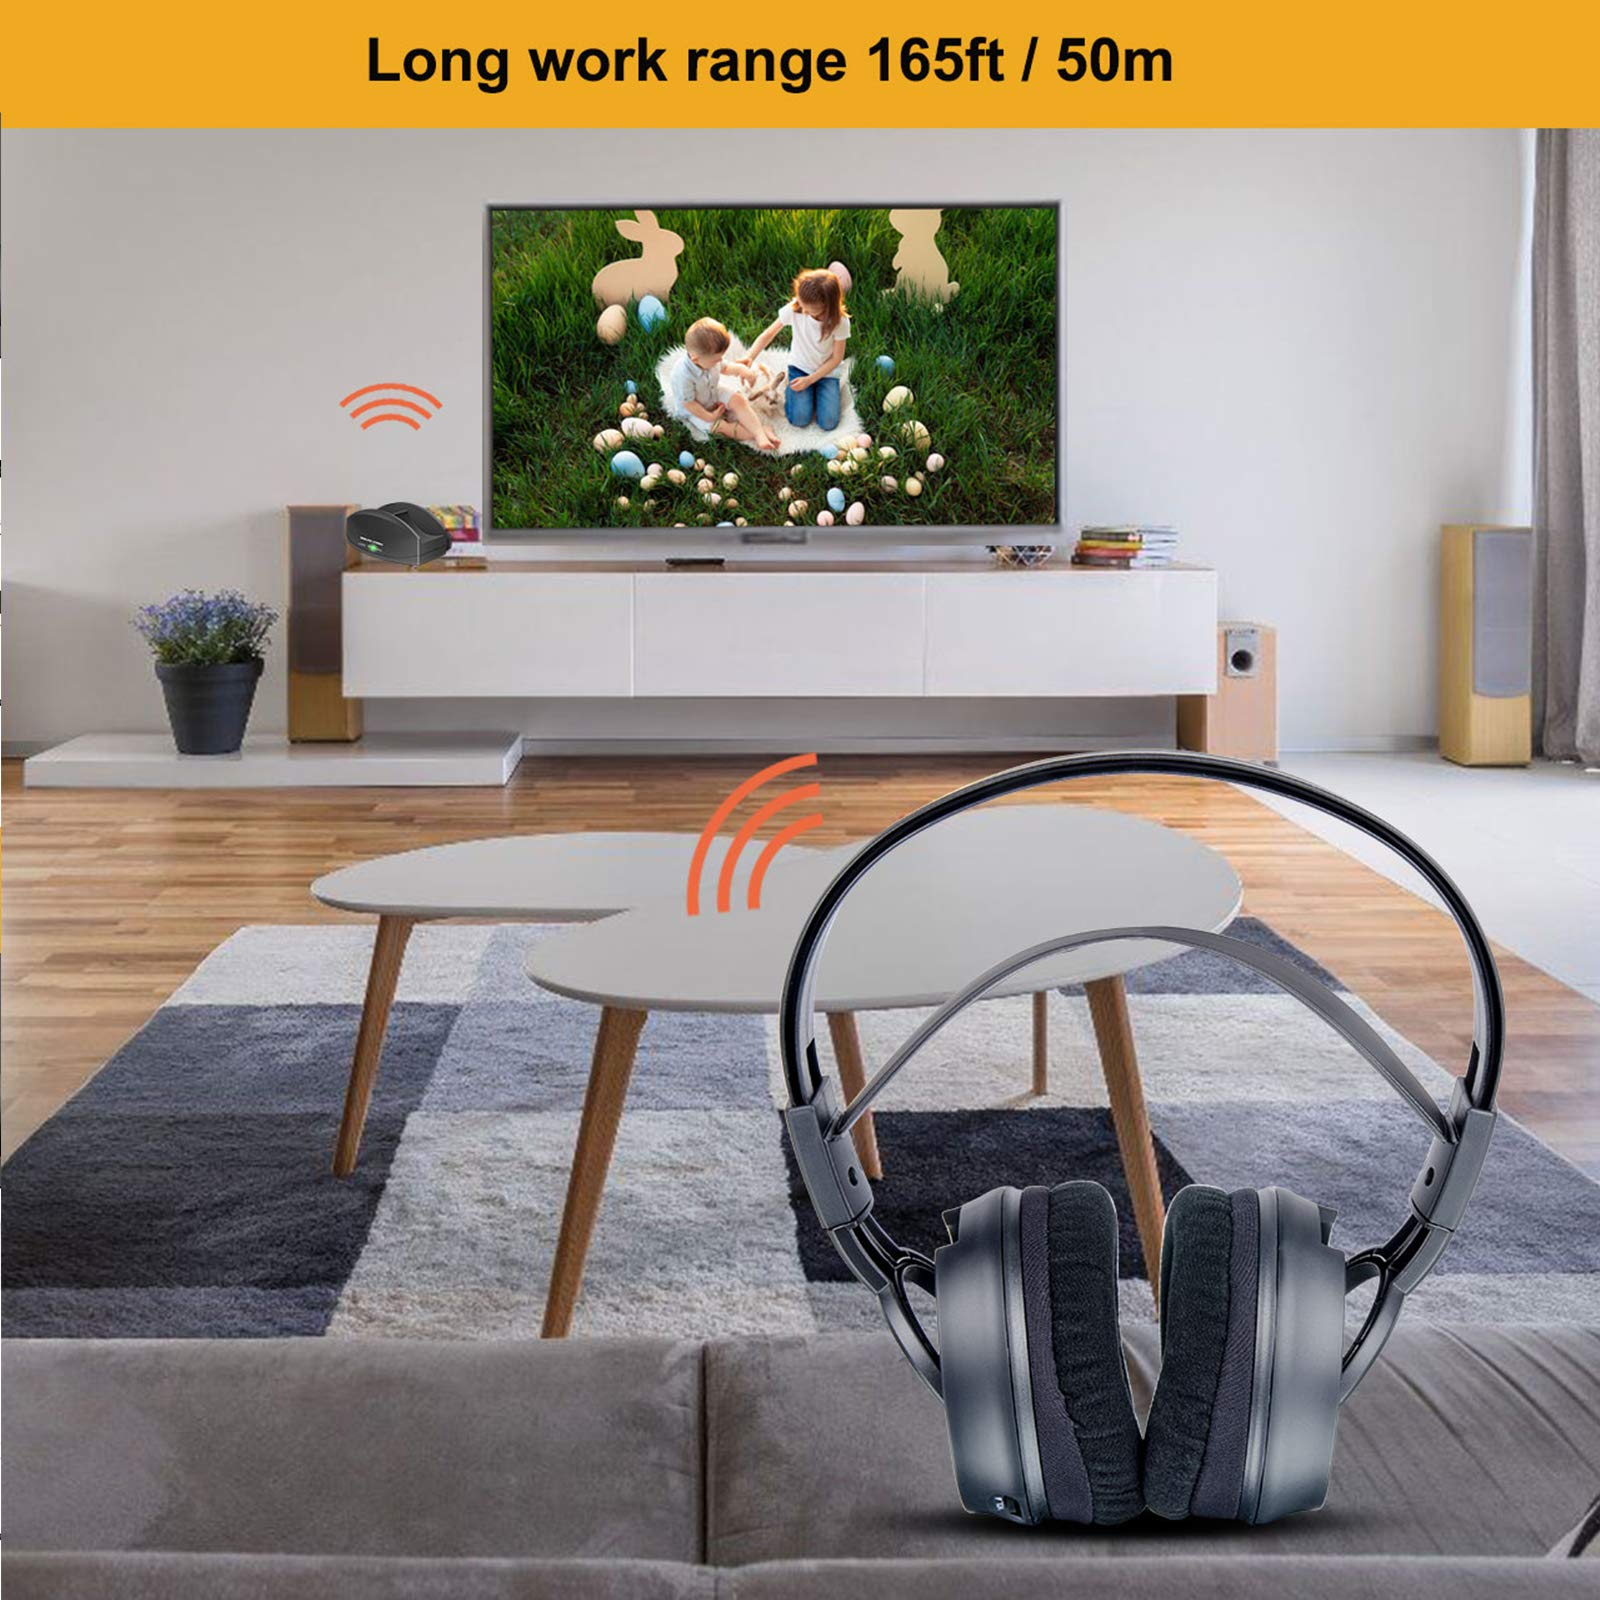 Wireless Headphone for TV Watching,Ansten Over-Ear Headphone with Charging Dock Lightweight Cordless Design for Gaming PC TV iPhone Ipad 25hr Listening,Rechargeable and 50m/164 FT Range